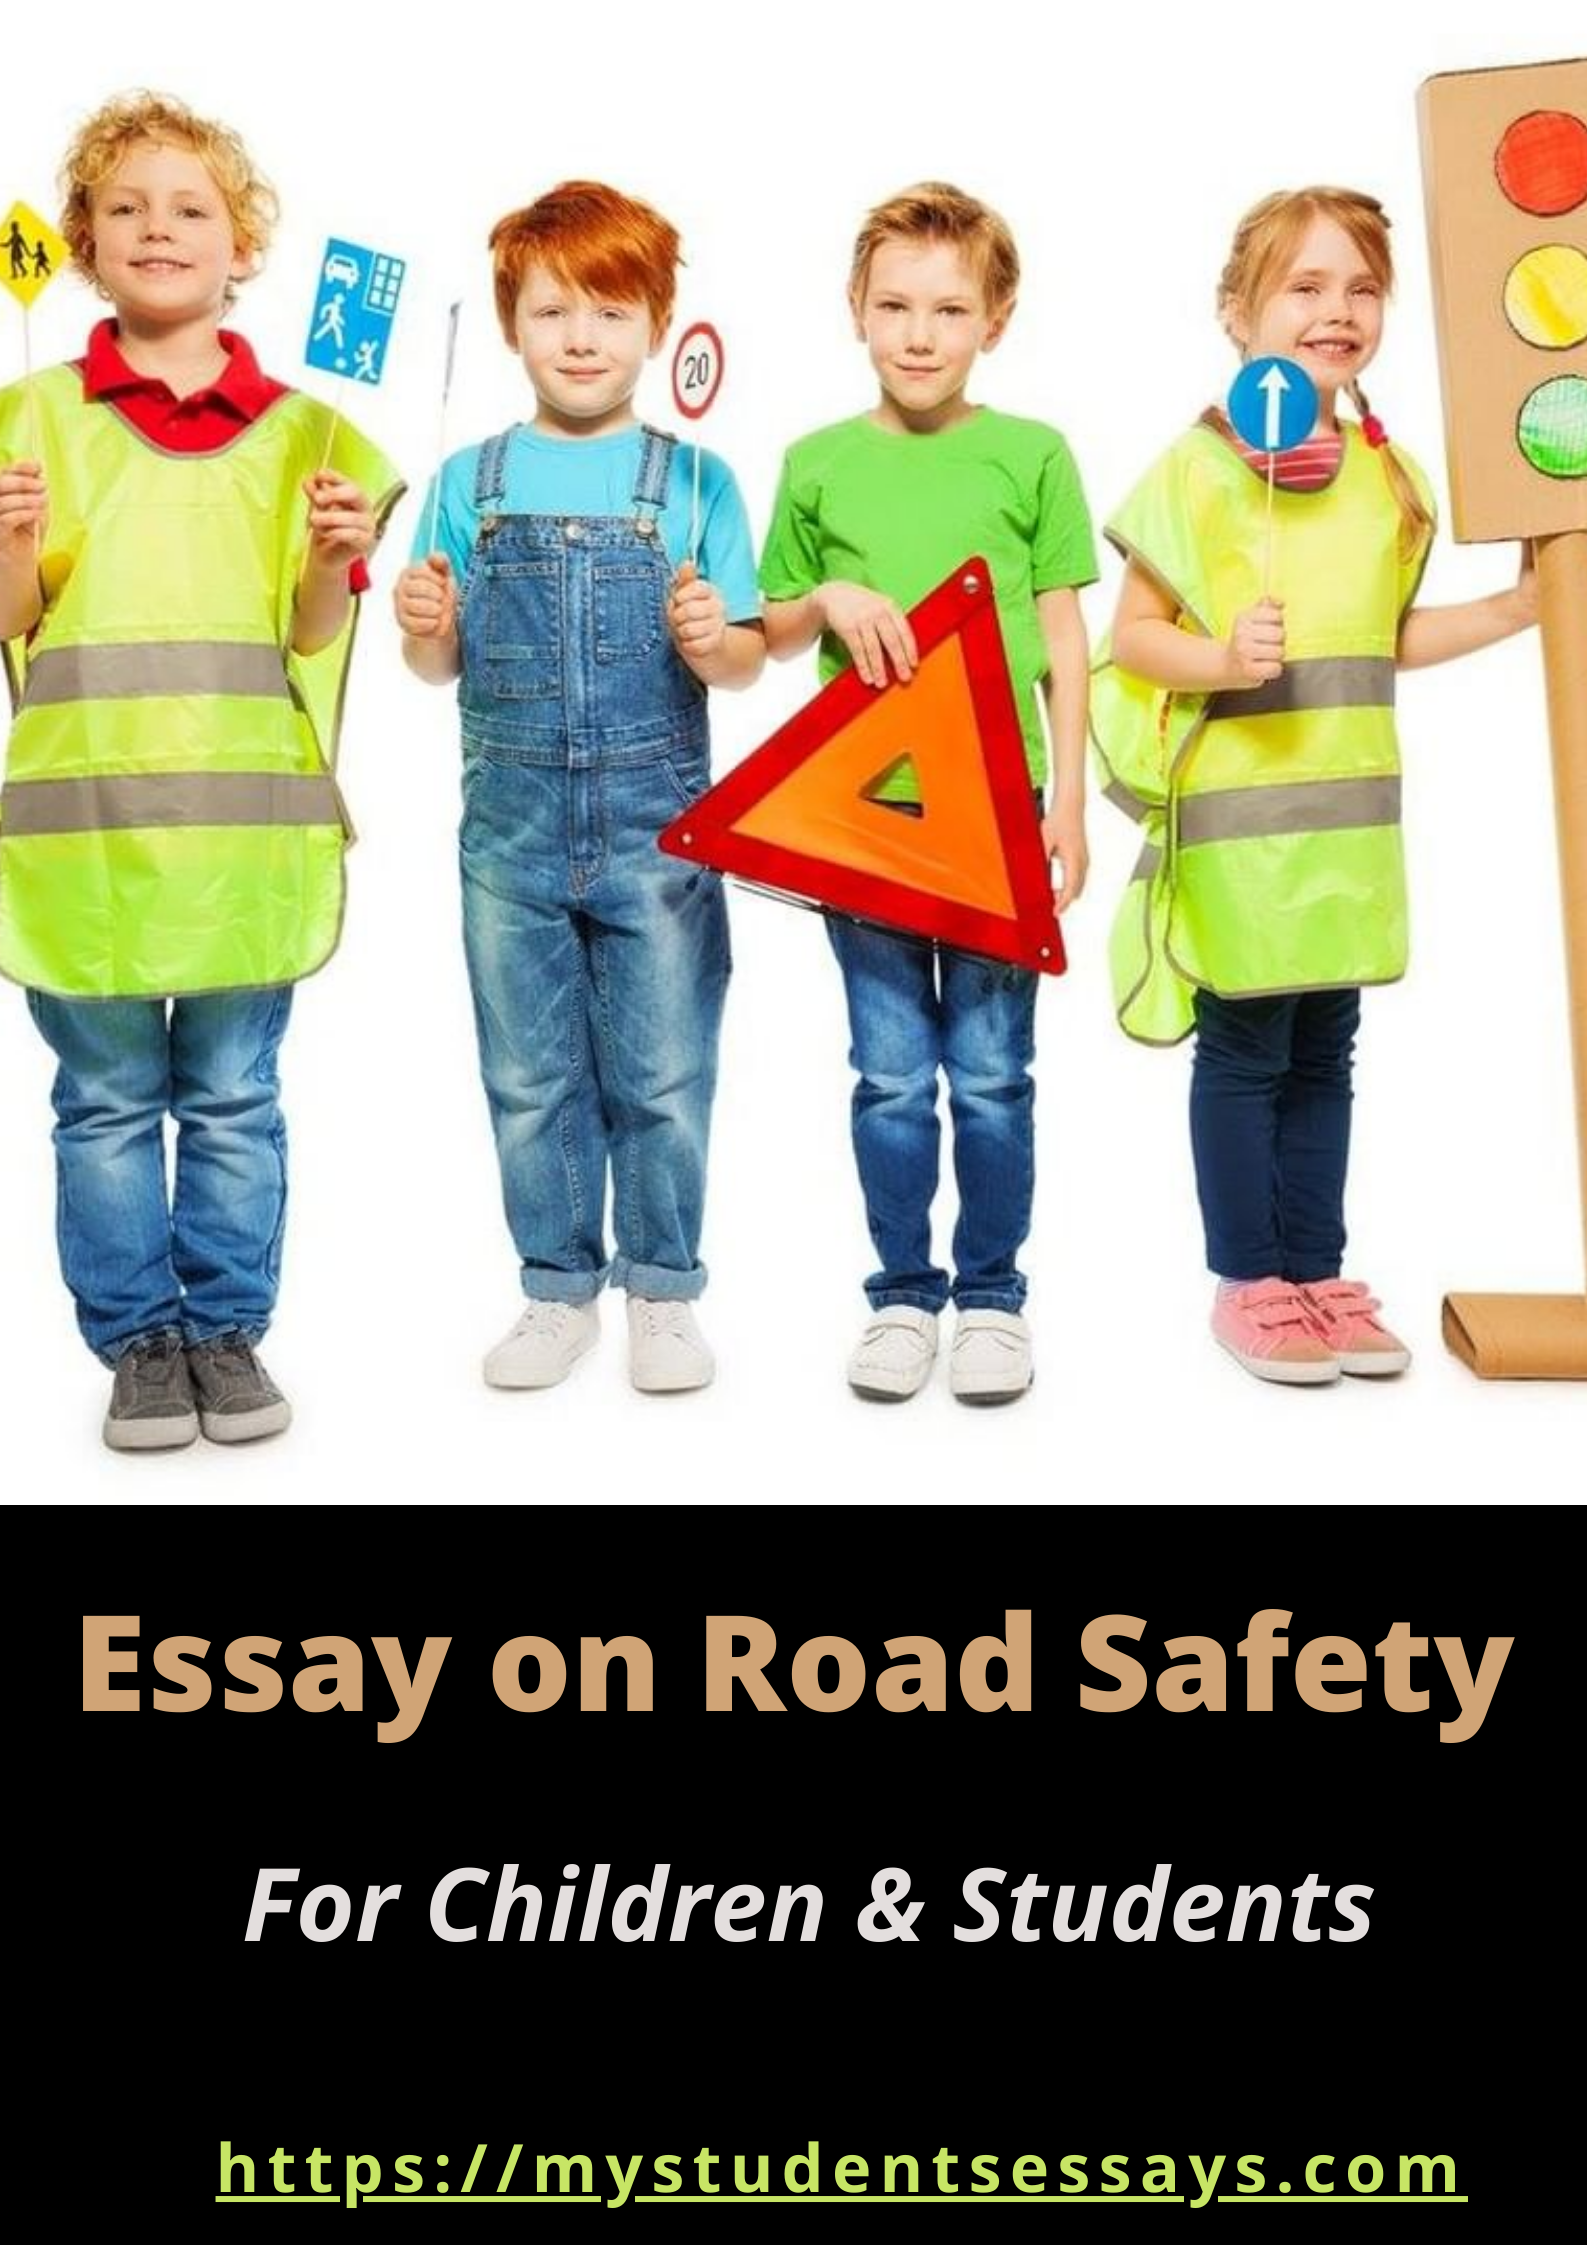 Essay on Road Safety For Children & Students